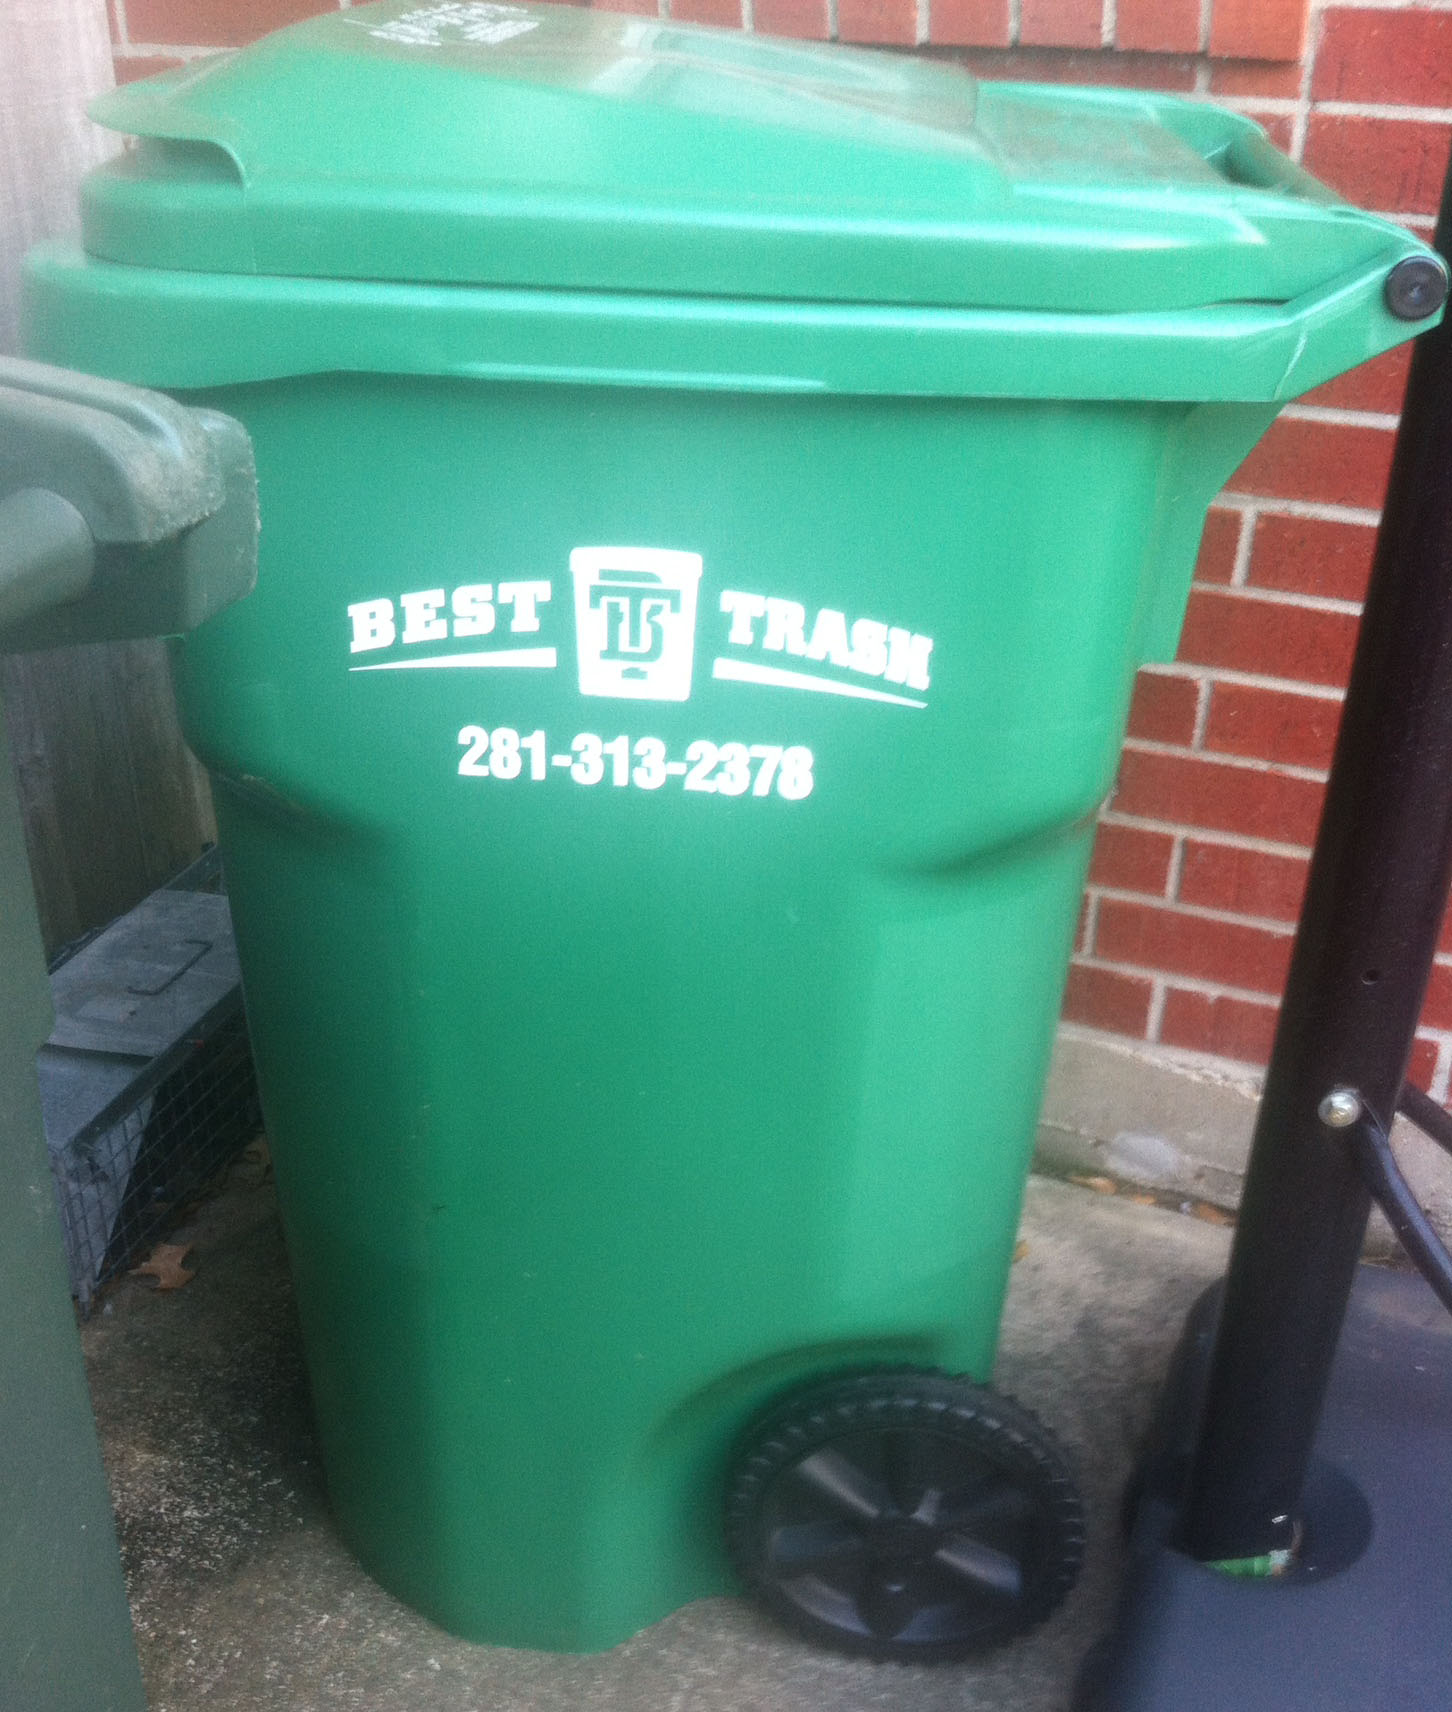 Make Sure Trash Recycling And Food Ss Are Sorted Correctly Either Placed In Curbside Bins Or Taken To Your Town S Drop Off